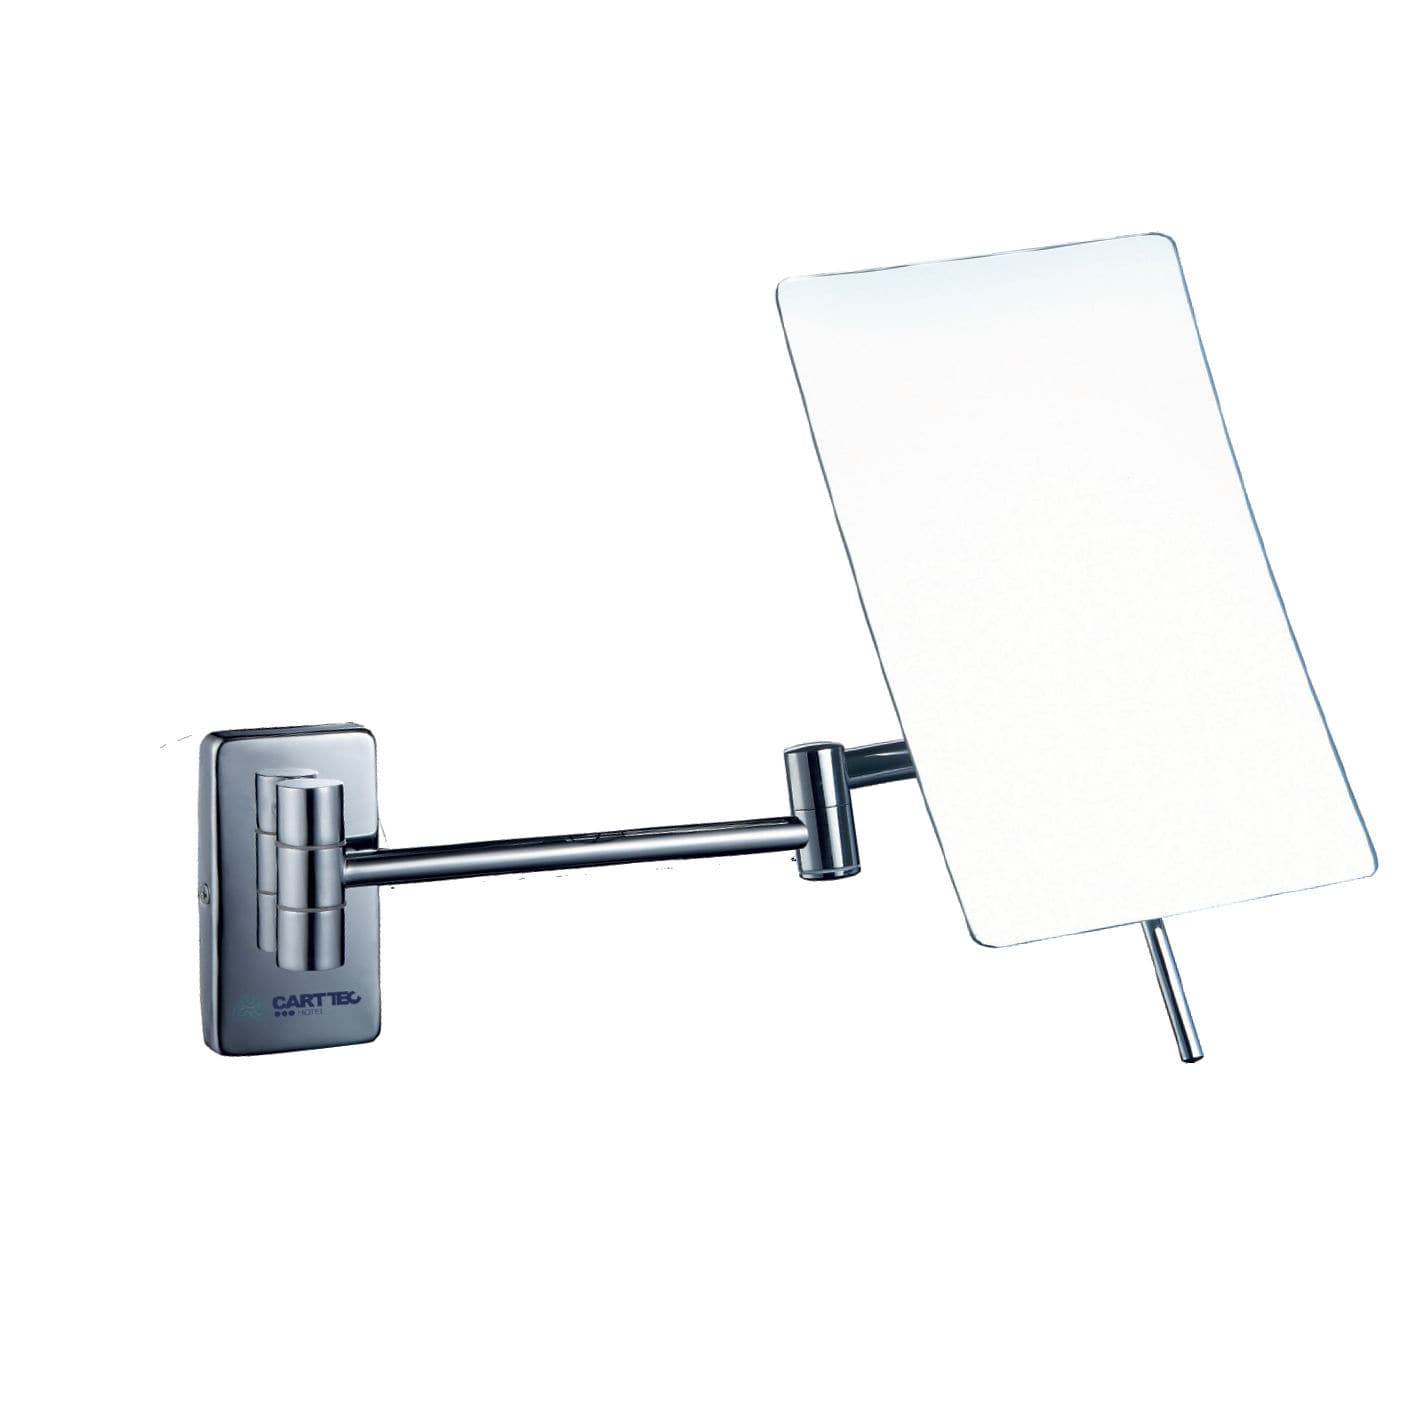 Wall Mounted Bathroom Mirror Magnifying Swivel Contemporary Tavolozza